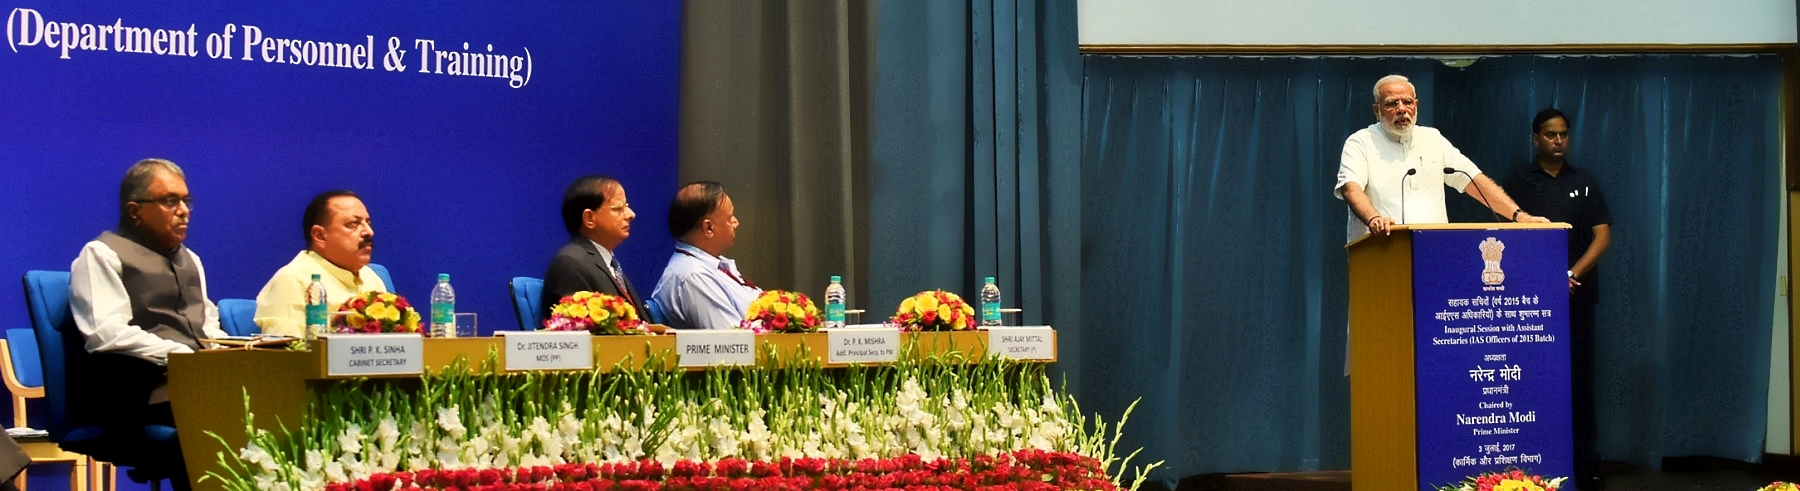 Inauguration Session with Assistant Secretaries (IAS Officers of  2015 Batch) chaired by Hon'ble Prime Minister